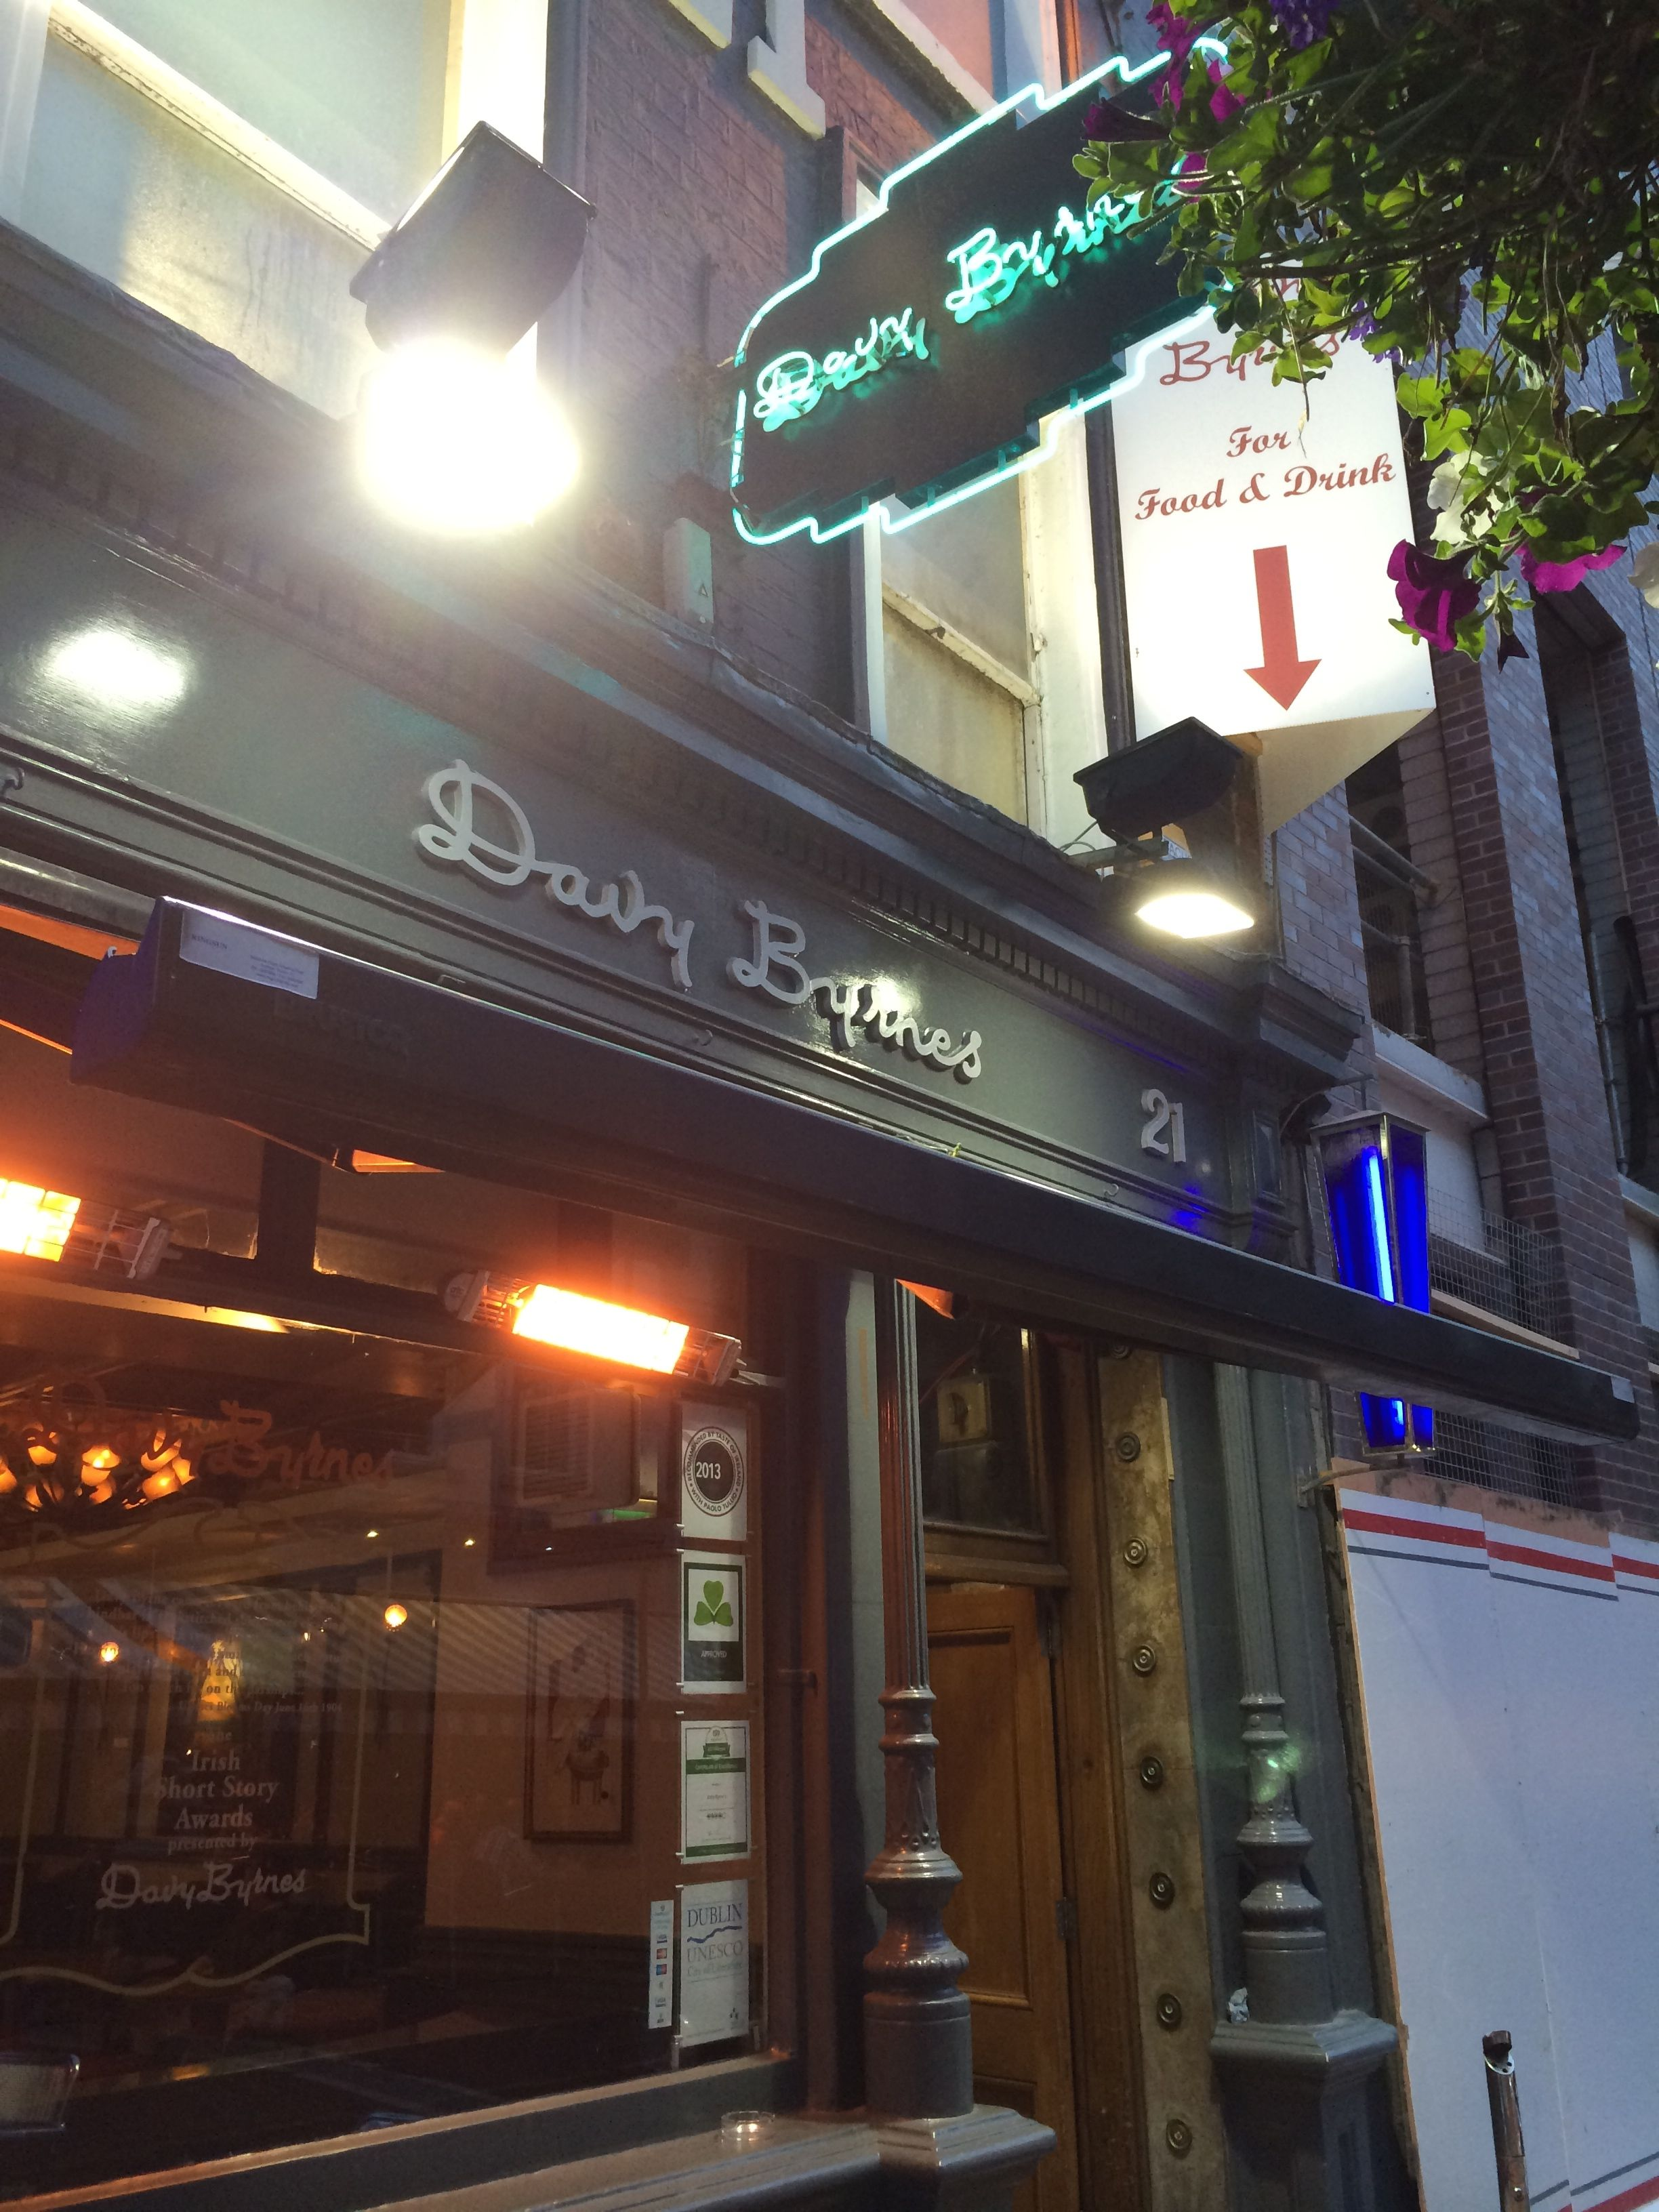 Front of Davy Byrne's. Photo by Jasmine Mulliken, 29 June 2014.